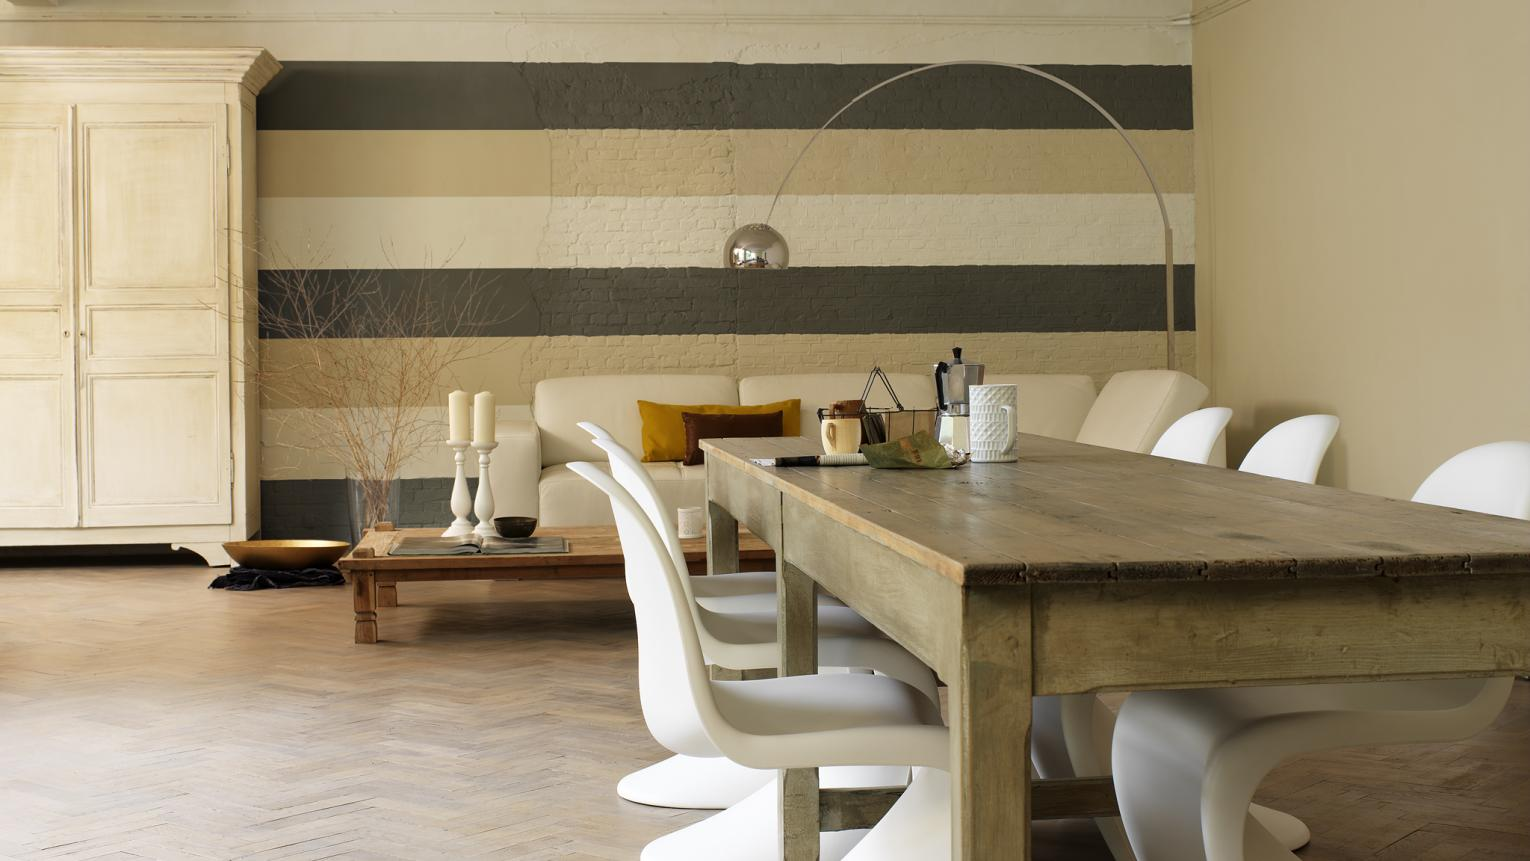 A wall of wide stripes in warm, neutral shades draws the eye.